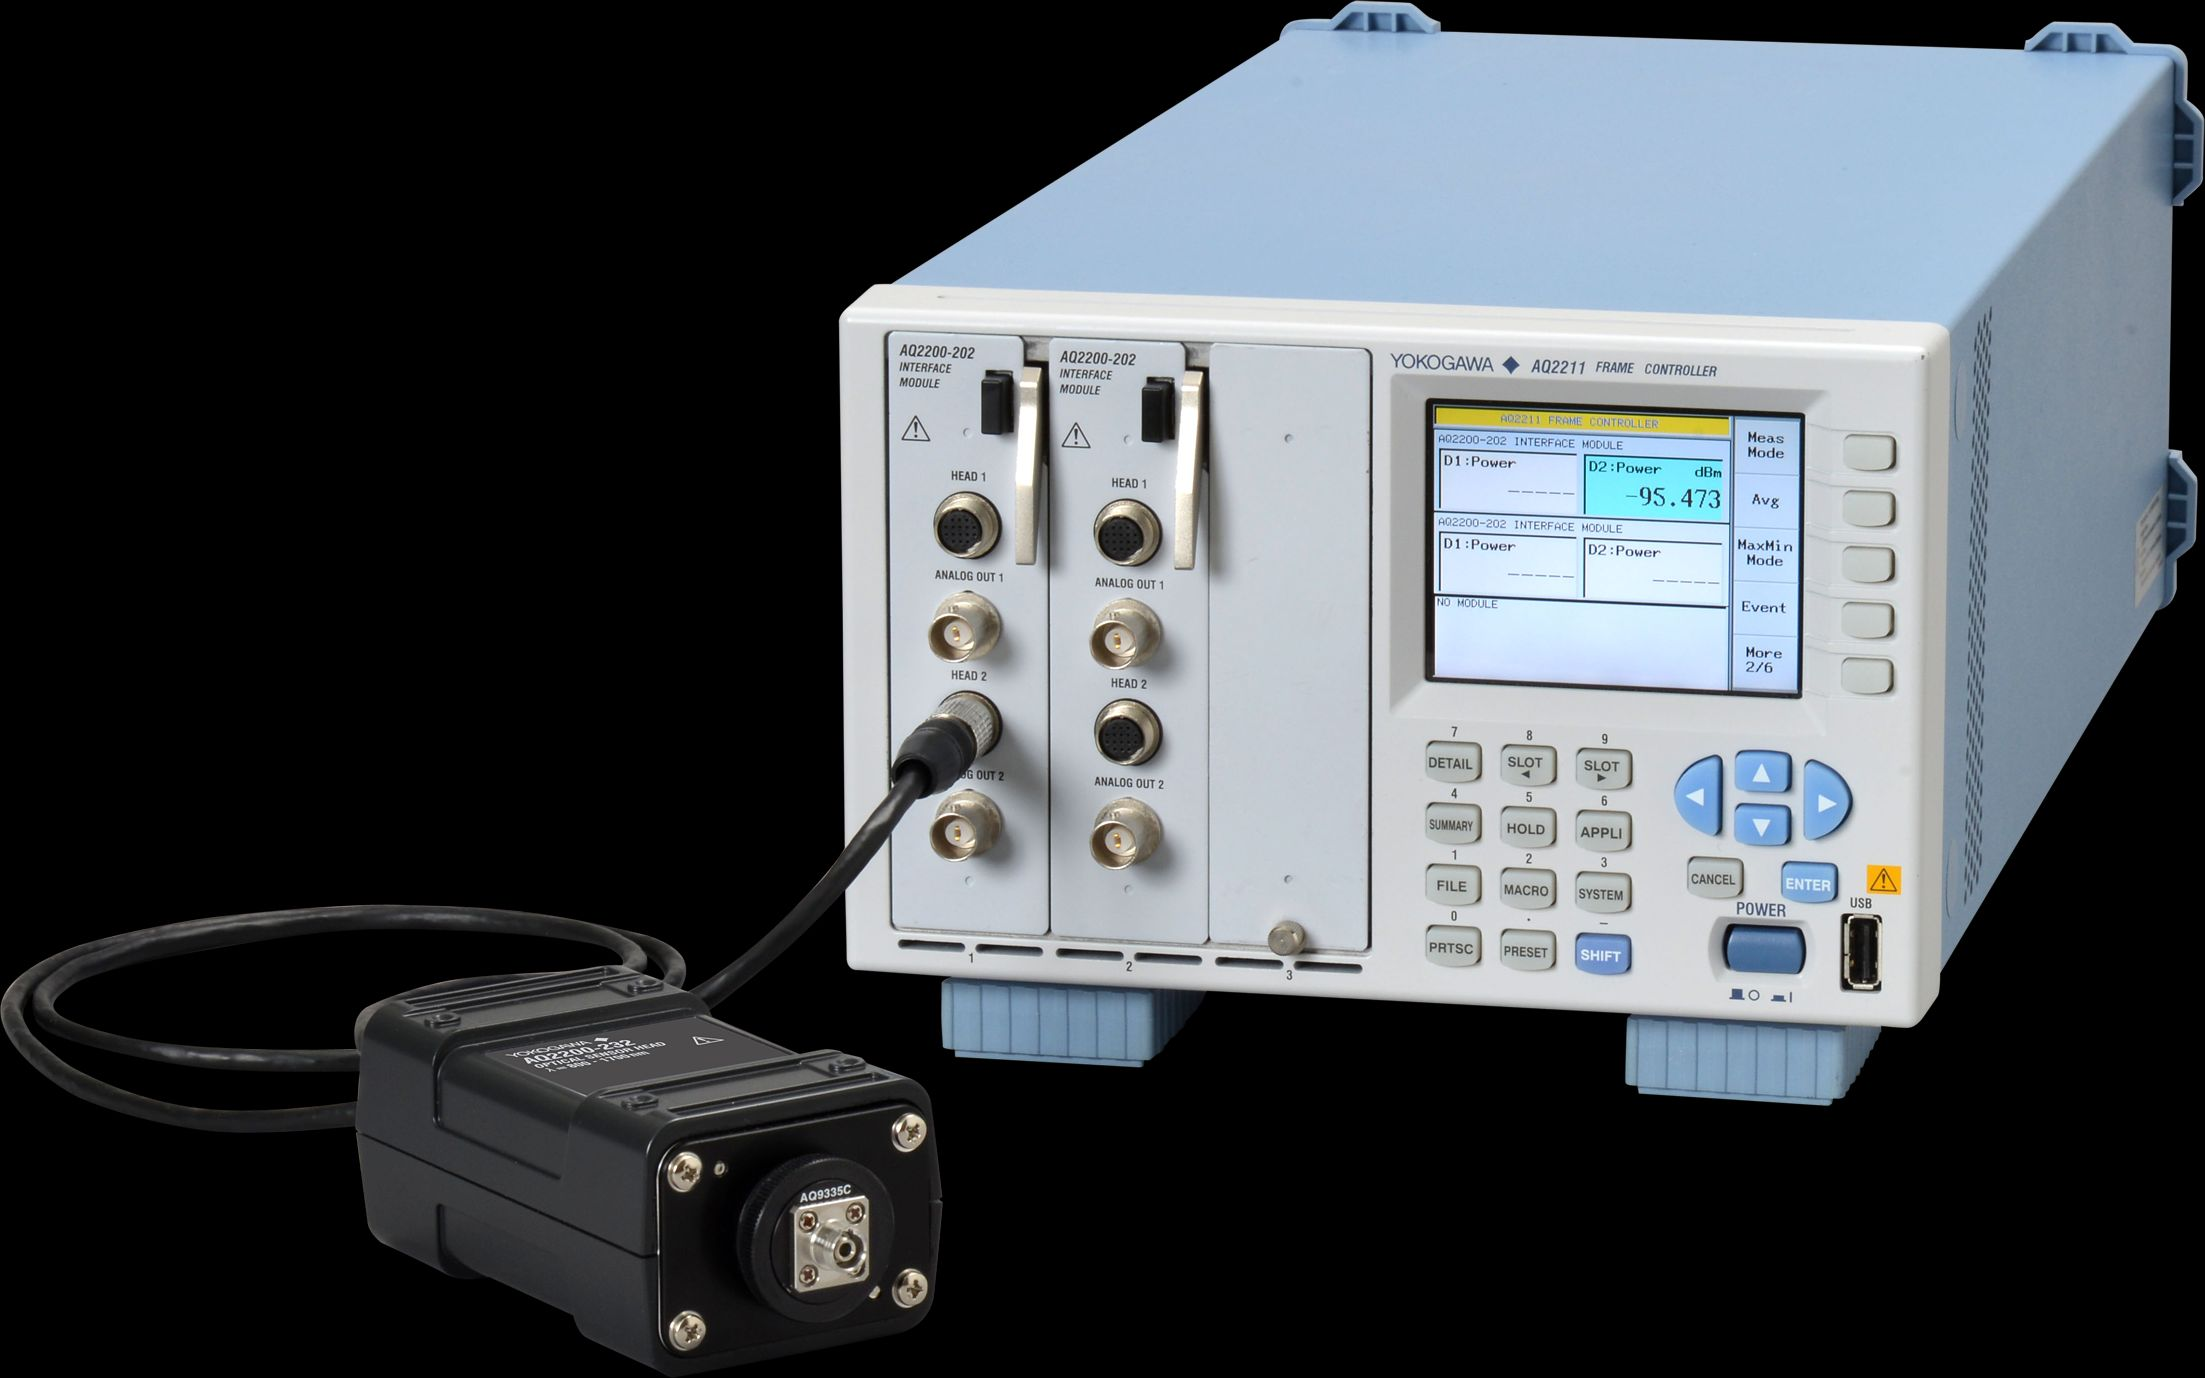 Yokogawa optical sensor head and modular test platform